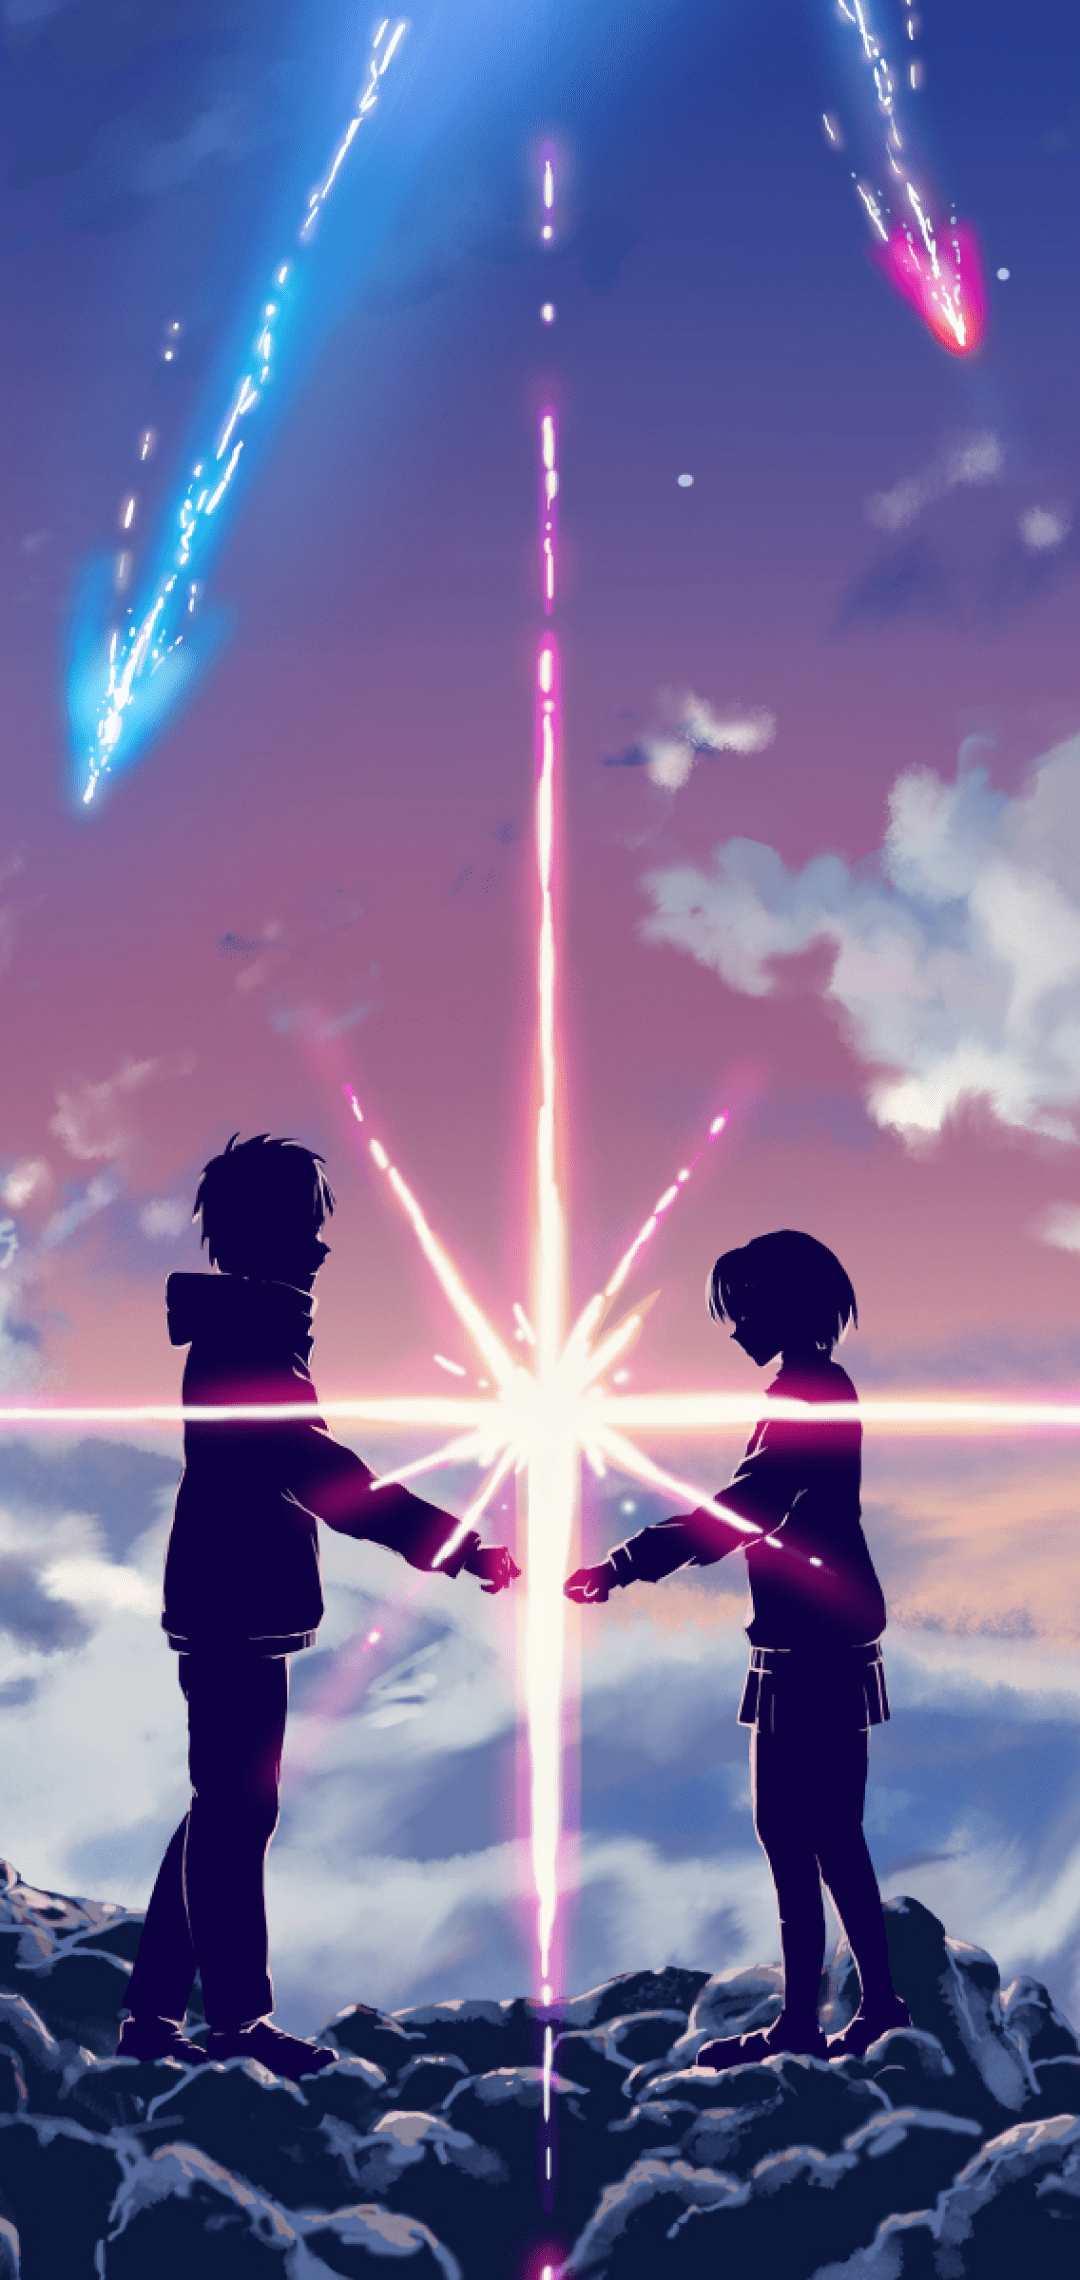 Your Name Wallpapers Top Free Download 4k Hd